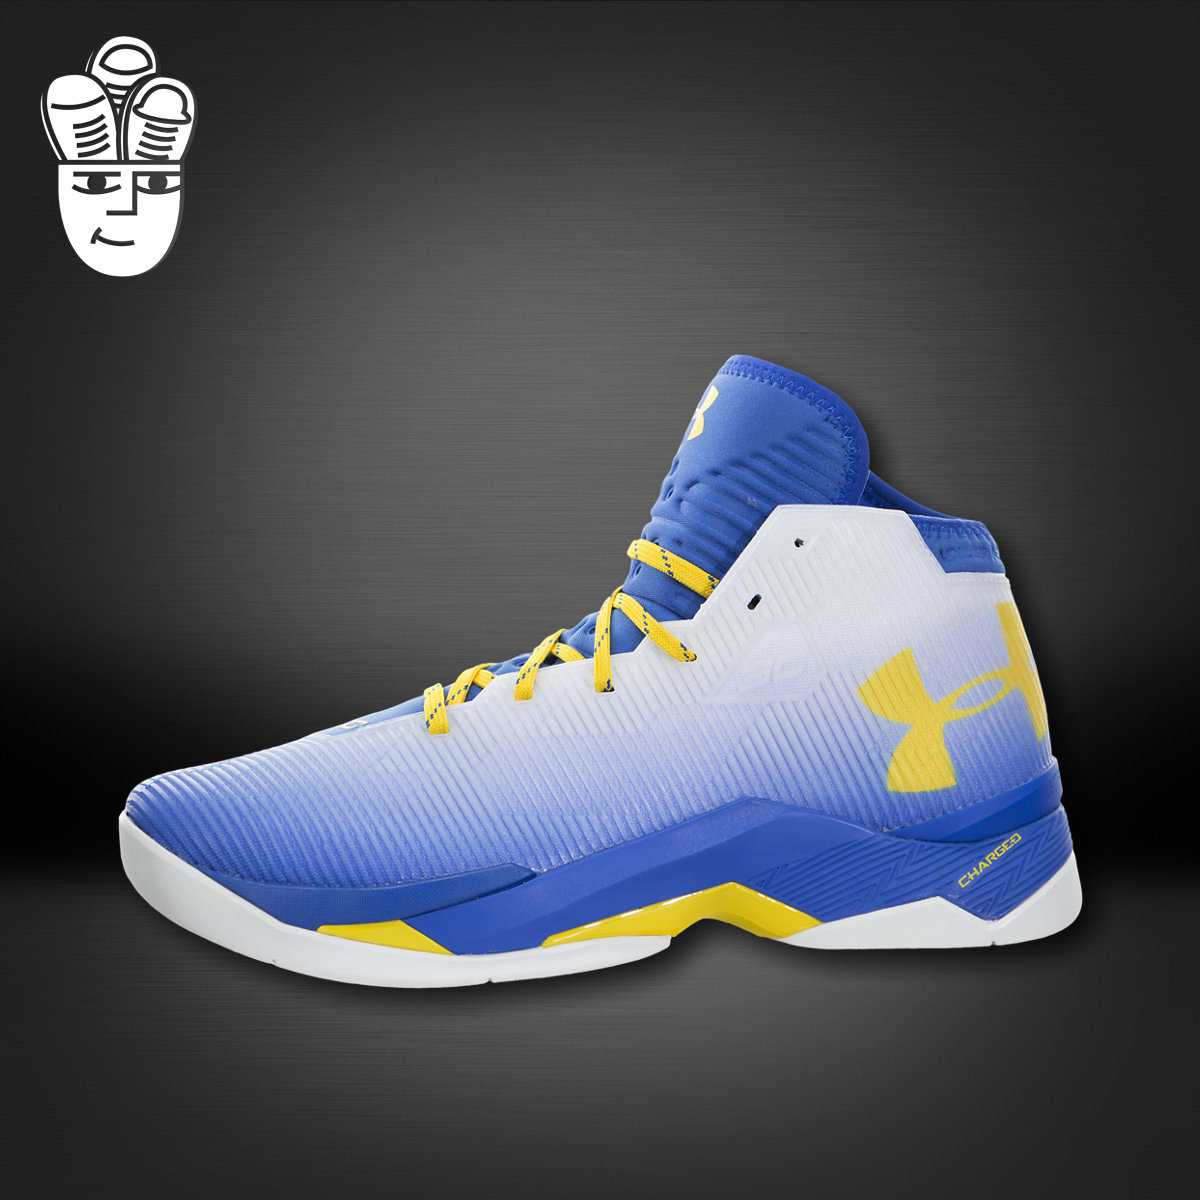 39f615f06ea4 Get Quotations · Men s under armour dema ua curry 2.5 curry 2.5 combat  basketball shoes sports shoes